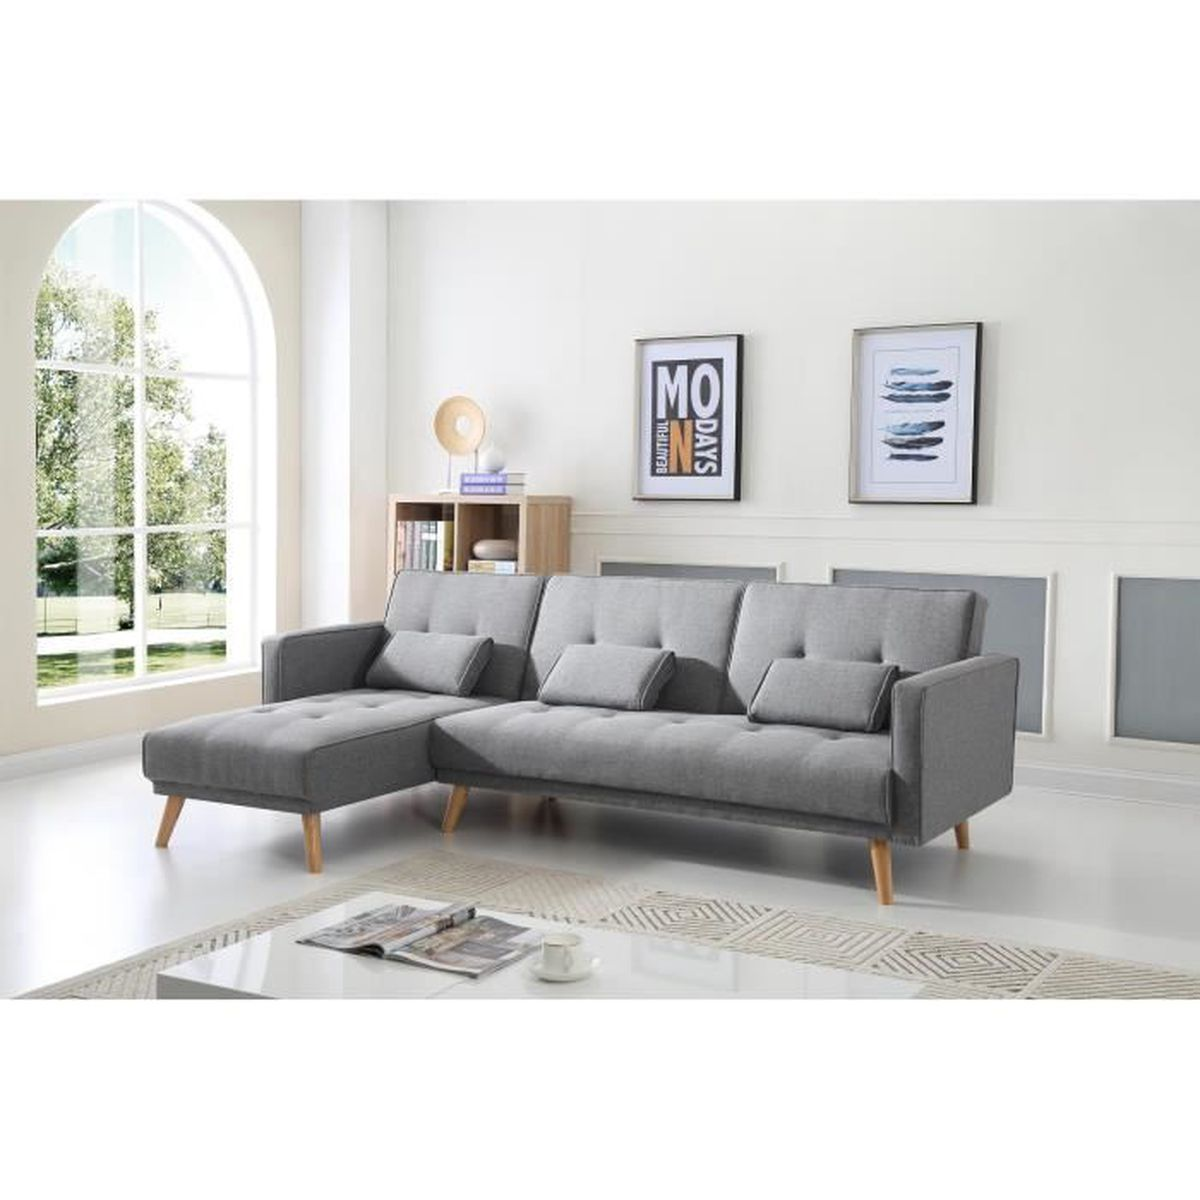 scandinave canap d angle r versible convertible 267x151x88cm gris clair achat vente. Black Bedroom Furniture Sets. Home Design Ideas